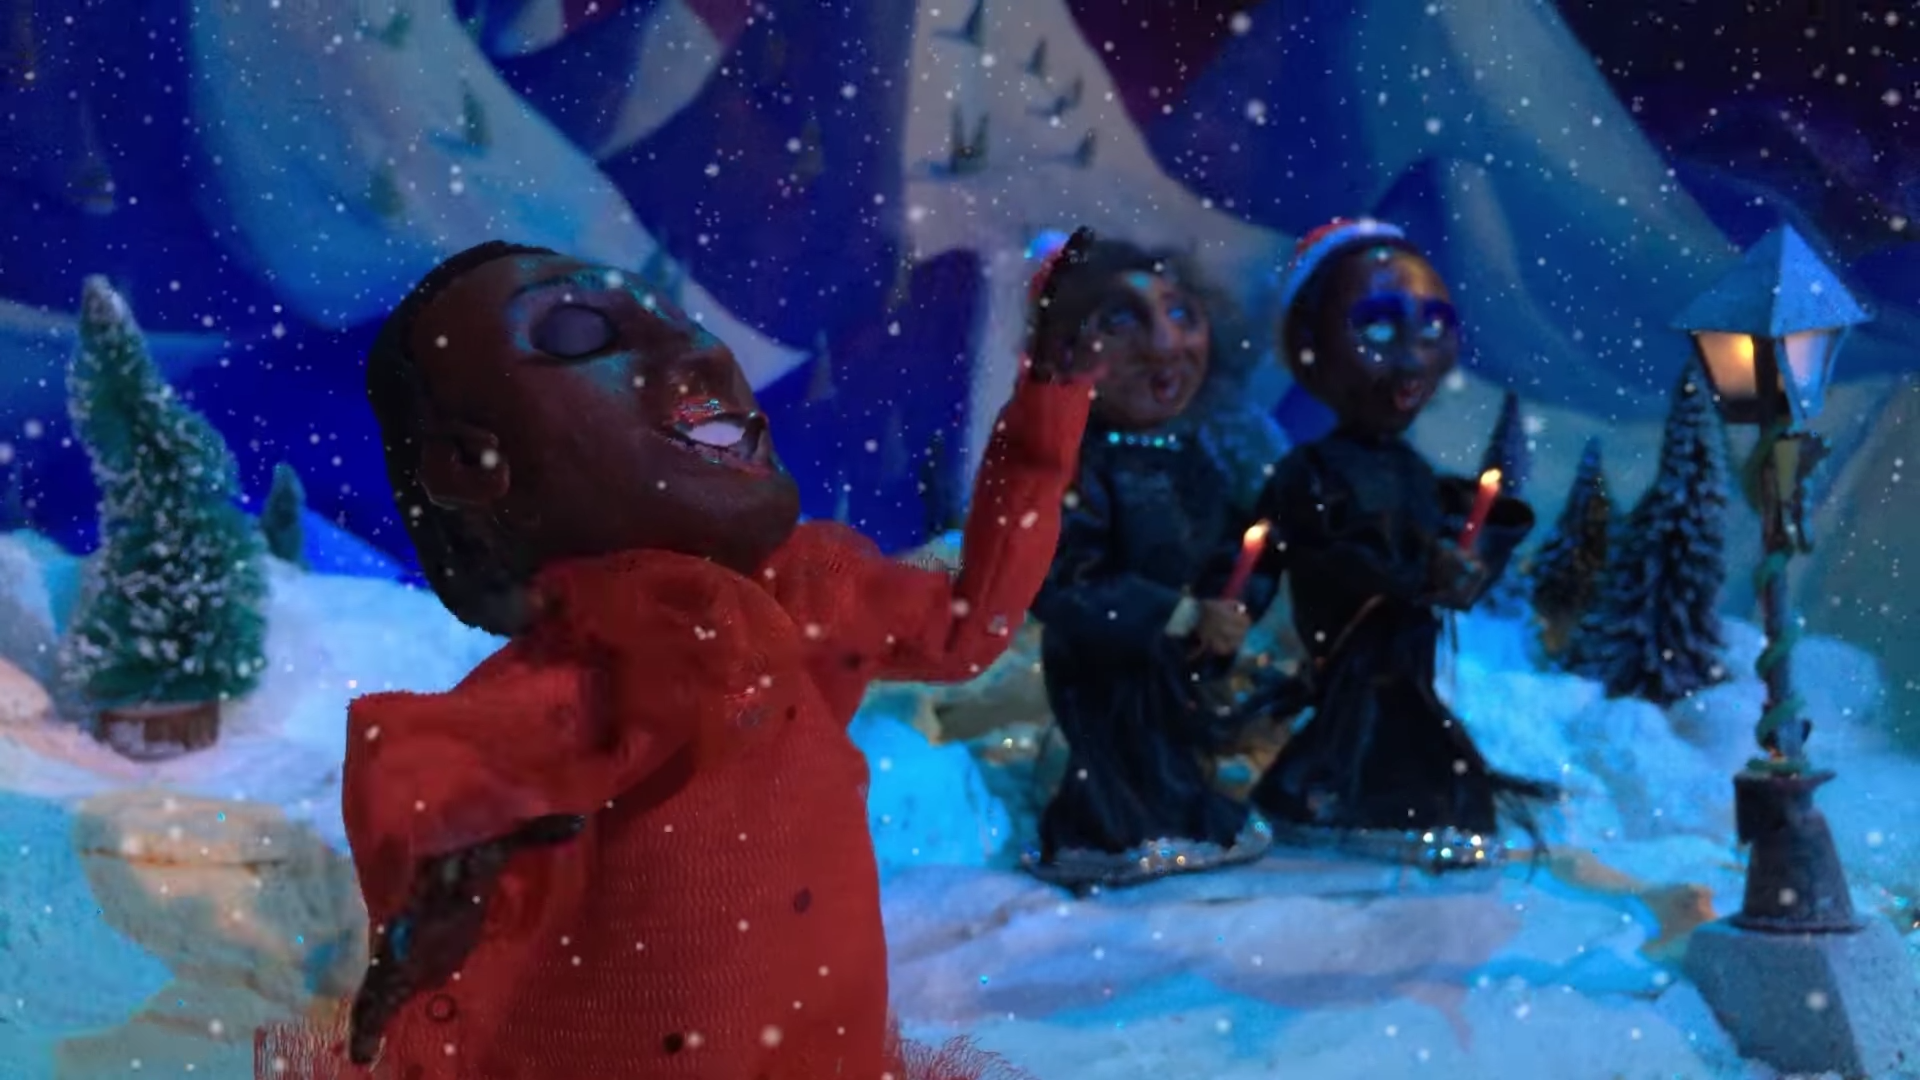 RIP Sharon Jones, But Thanks For This Claymation Holiday Video